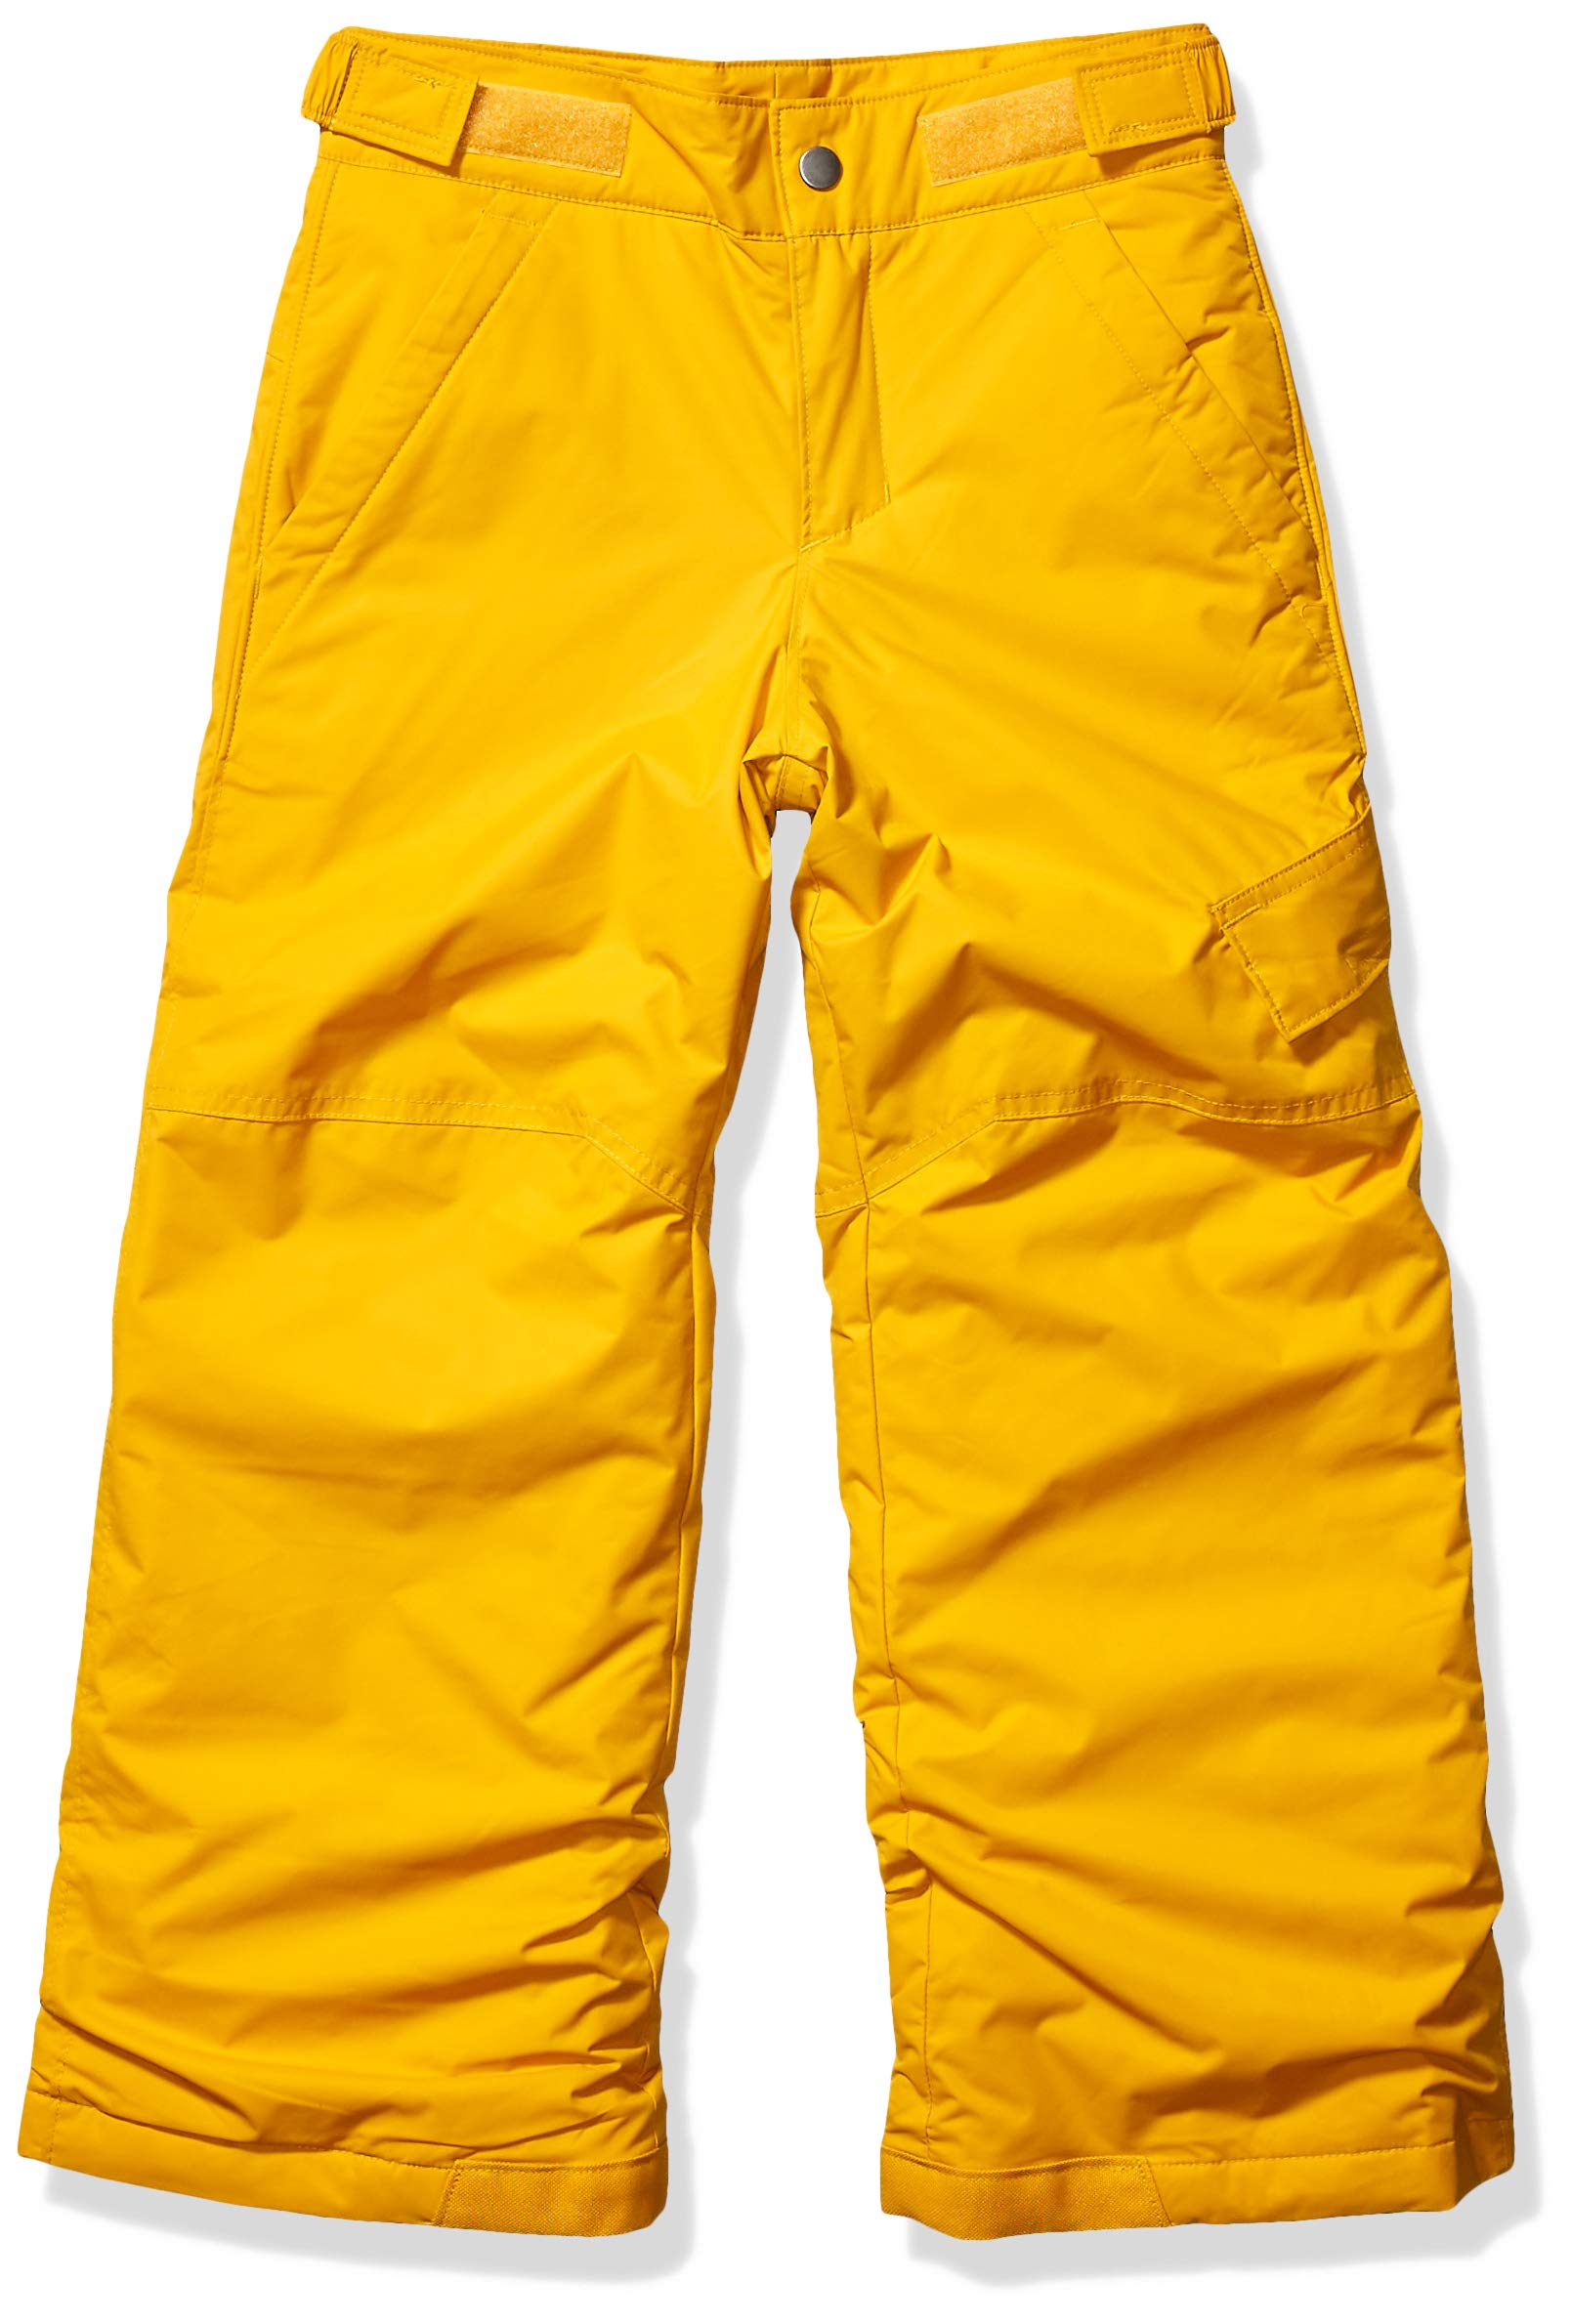 Columbia Boys' Kids Ice Slope II Pant, Golden Yellow, Small by Columbia